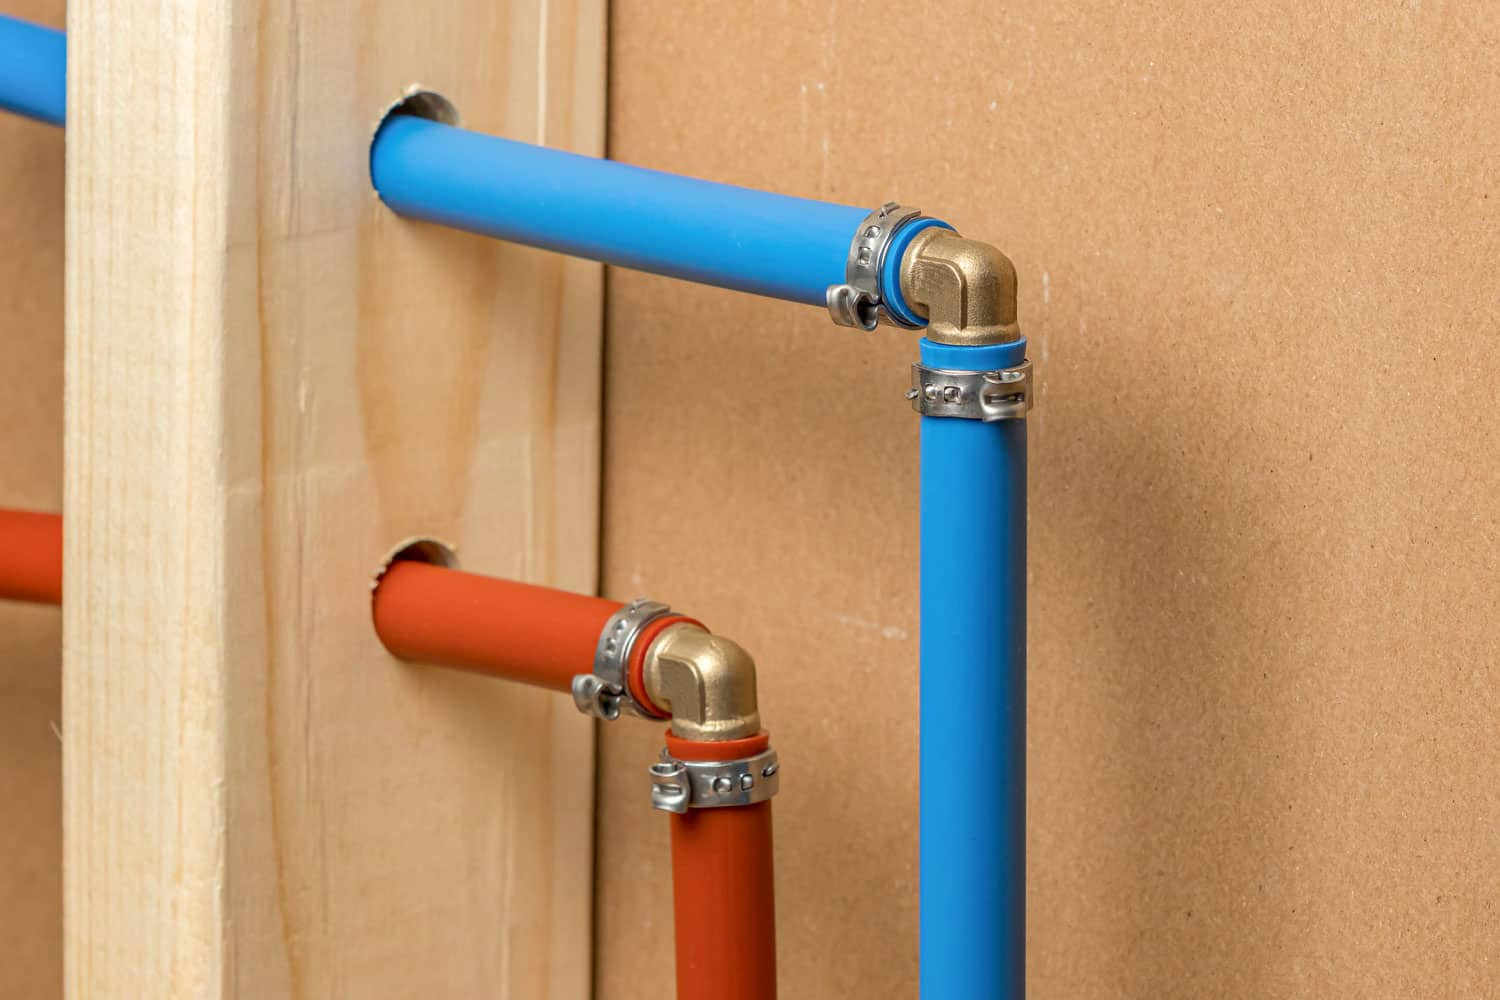 Pex plastic water supply plumbing pipe in wall of house